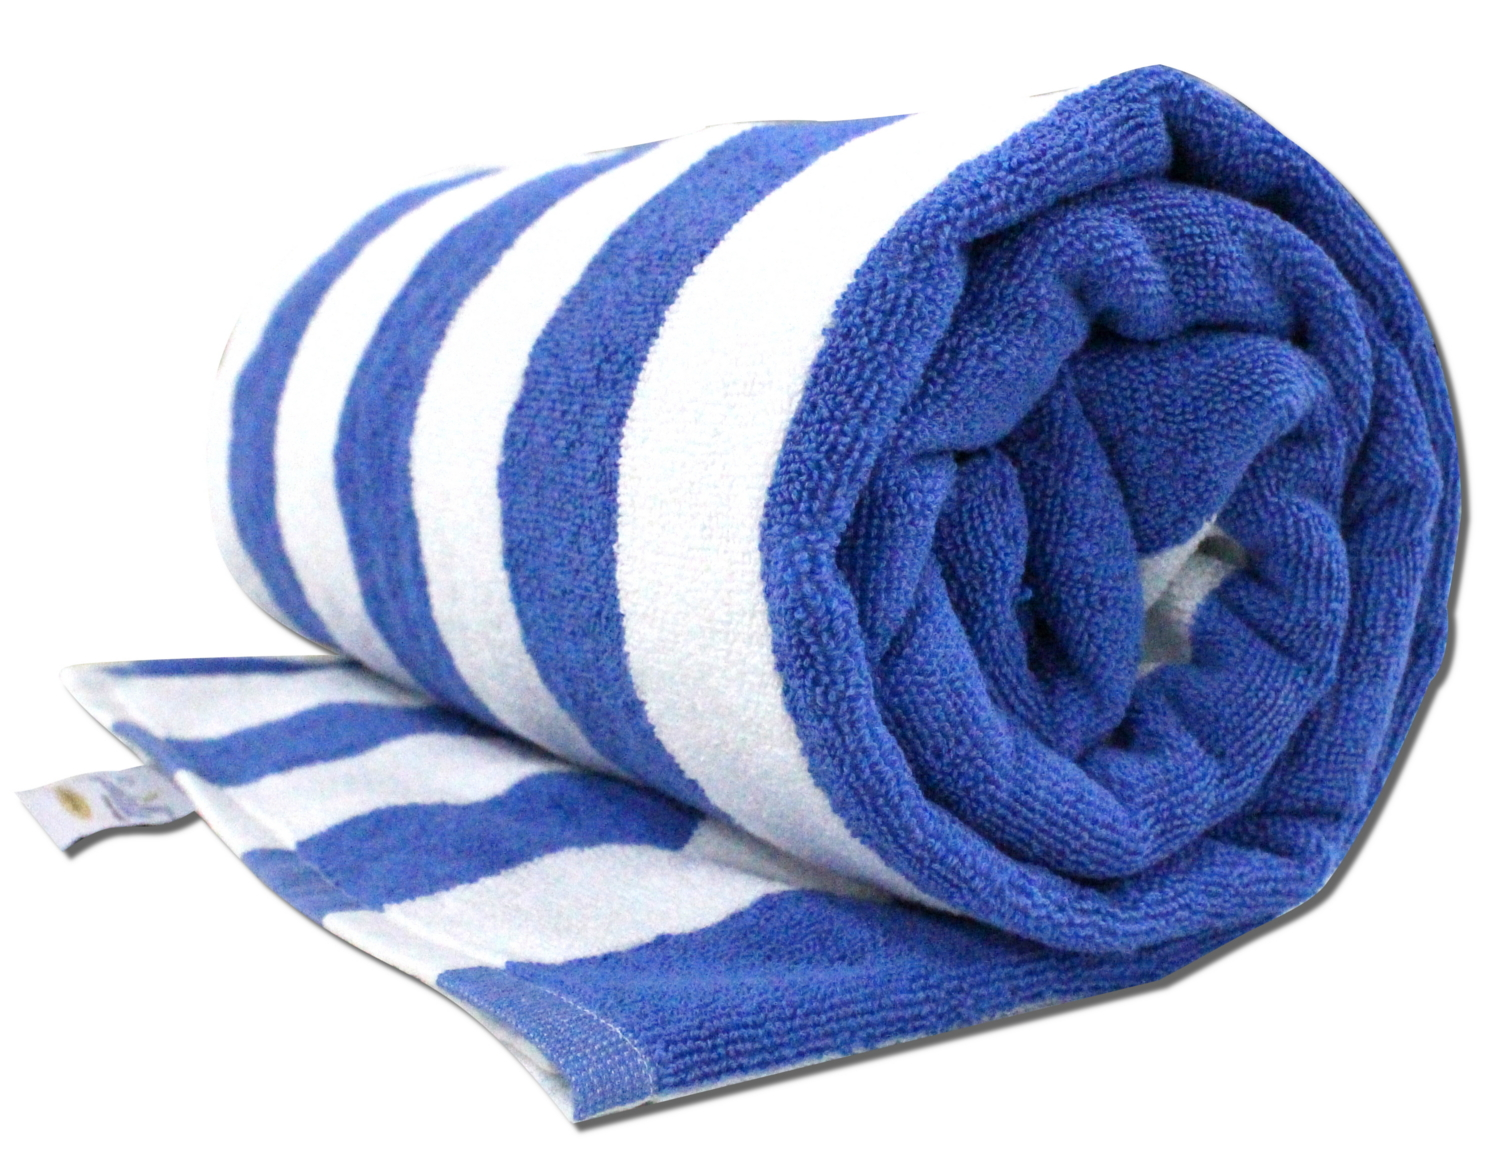 Pool Towel In Blue And White Stripes